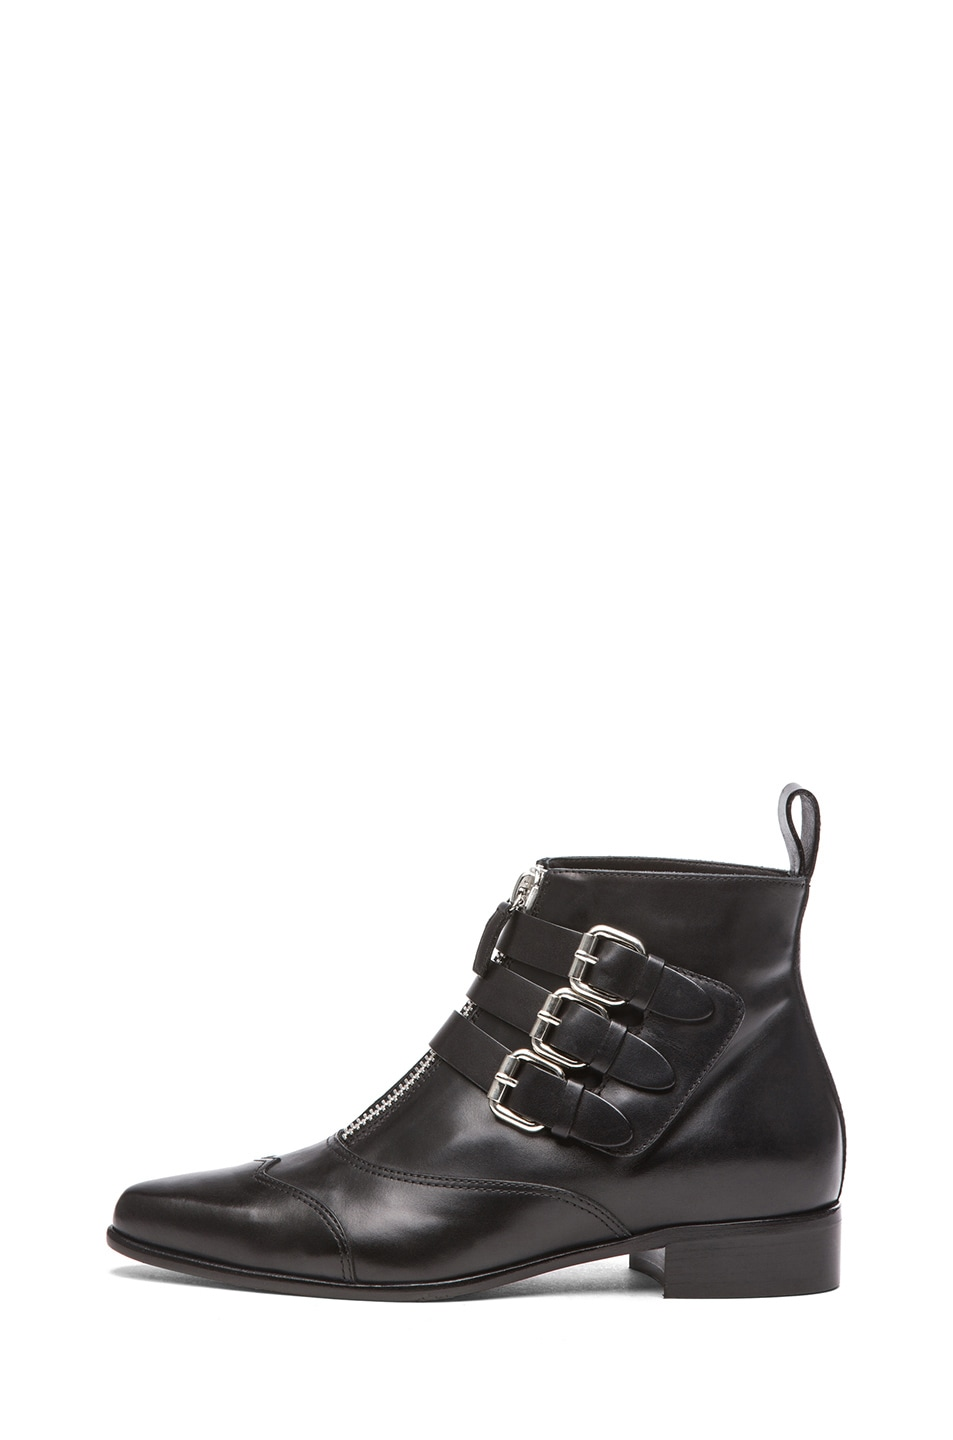 Image 1 of Tabitha Simmons Early Calfskin Leather Booties with Buckles in Black Calf